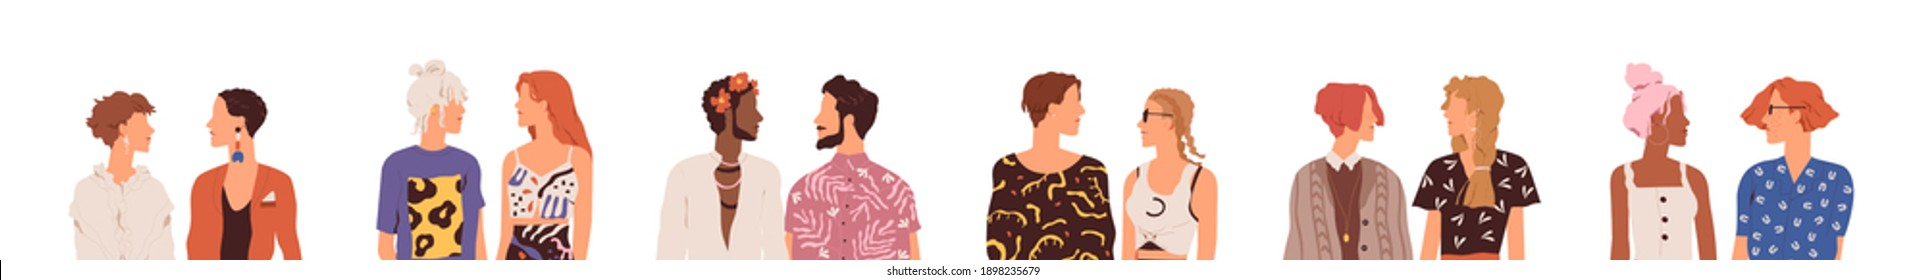 Set of homosexual and heterosexual parners. Collection of faceless couples. Young modern people talking and looking at each other. Colorful flat vector illustration isolated on white background